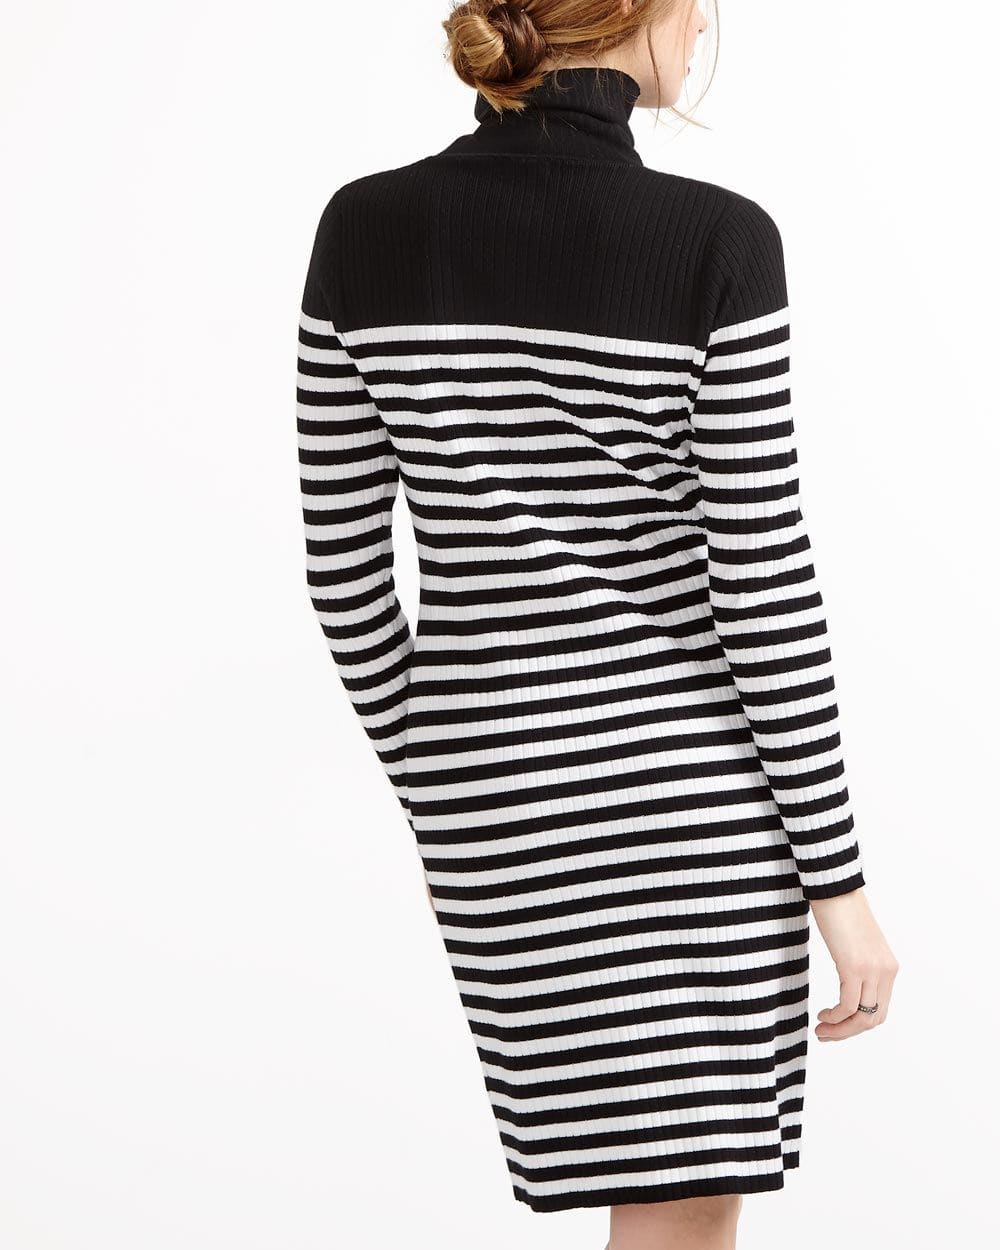 Turtleneck Striped Dress